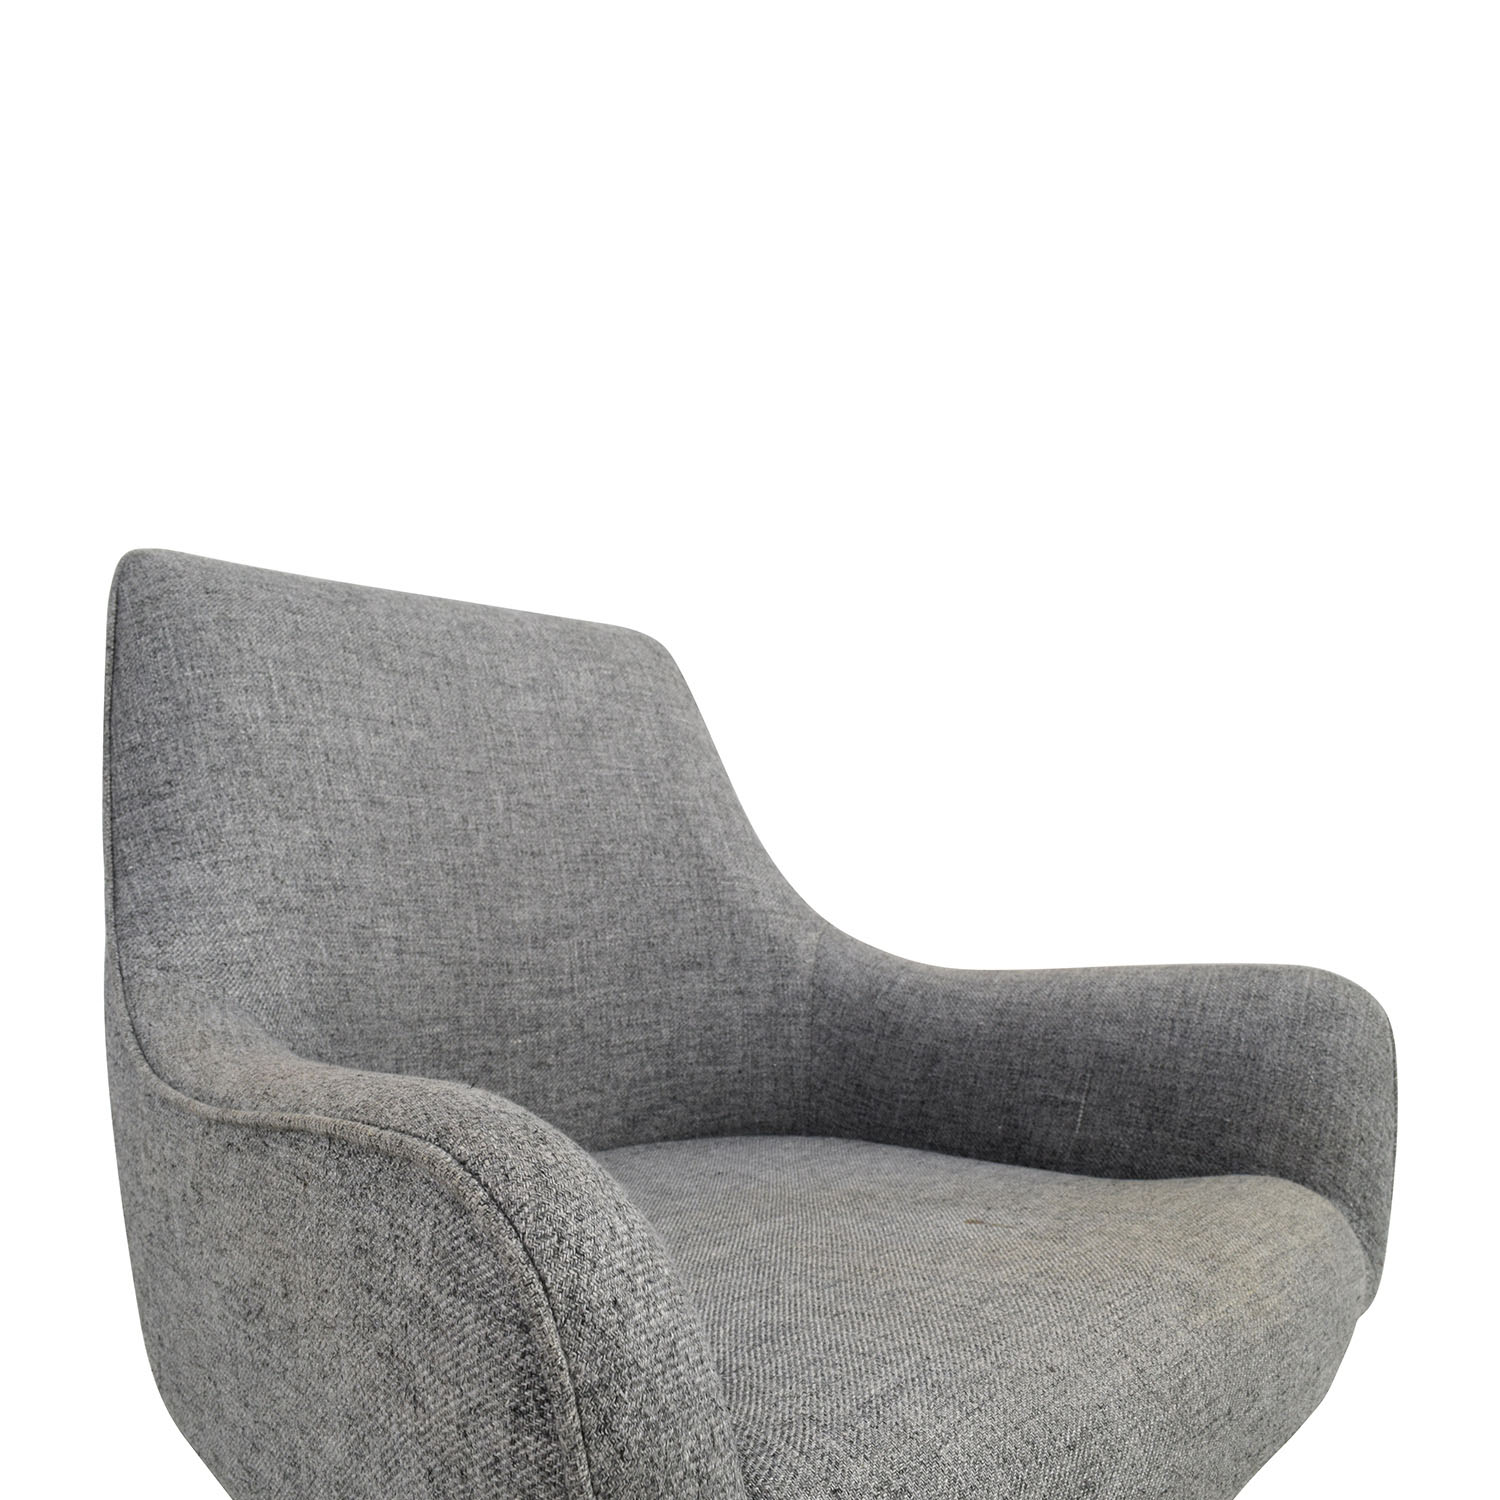 Wondrous 67 Off Cb2 Cb2 Grey Rounded Accent Chair Chairs Forskolin Free Trial Chair Design Images Forskolin Free Trialorg